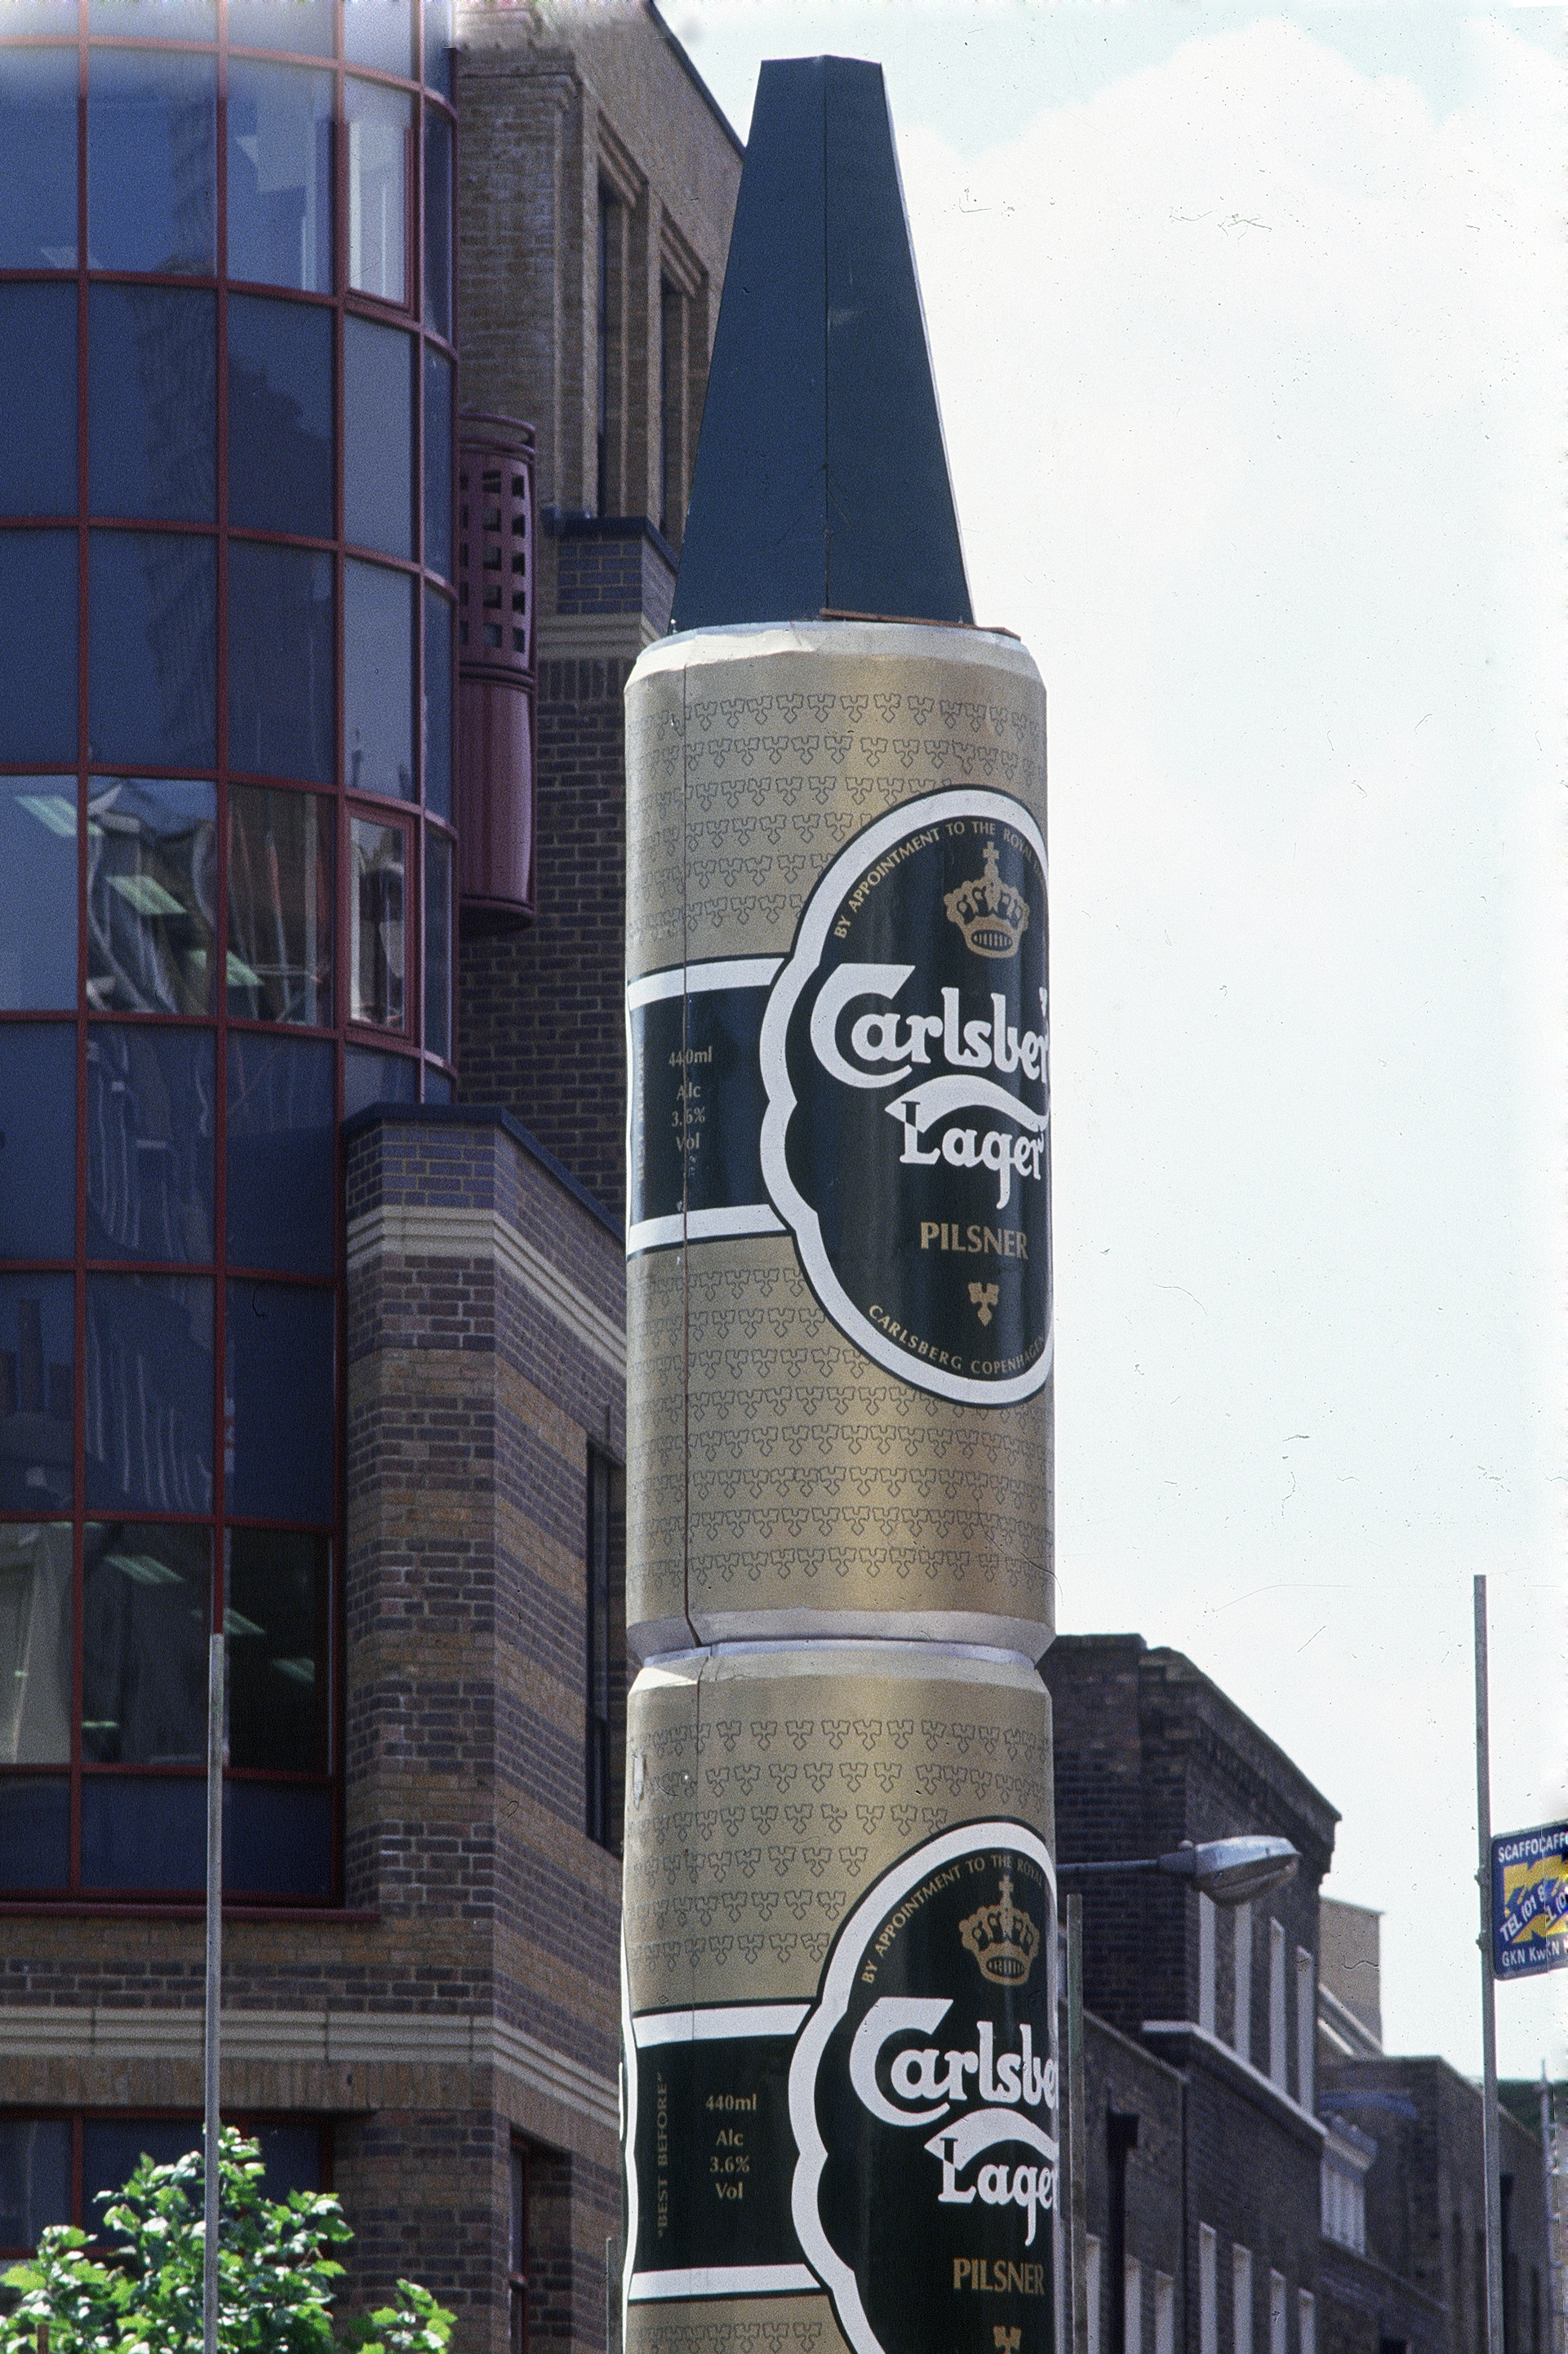 July 1989, the giant Carlsberg lager cans hiding the Sundial Pillar the day before the unveiling raised £10,000.